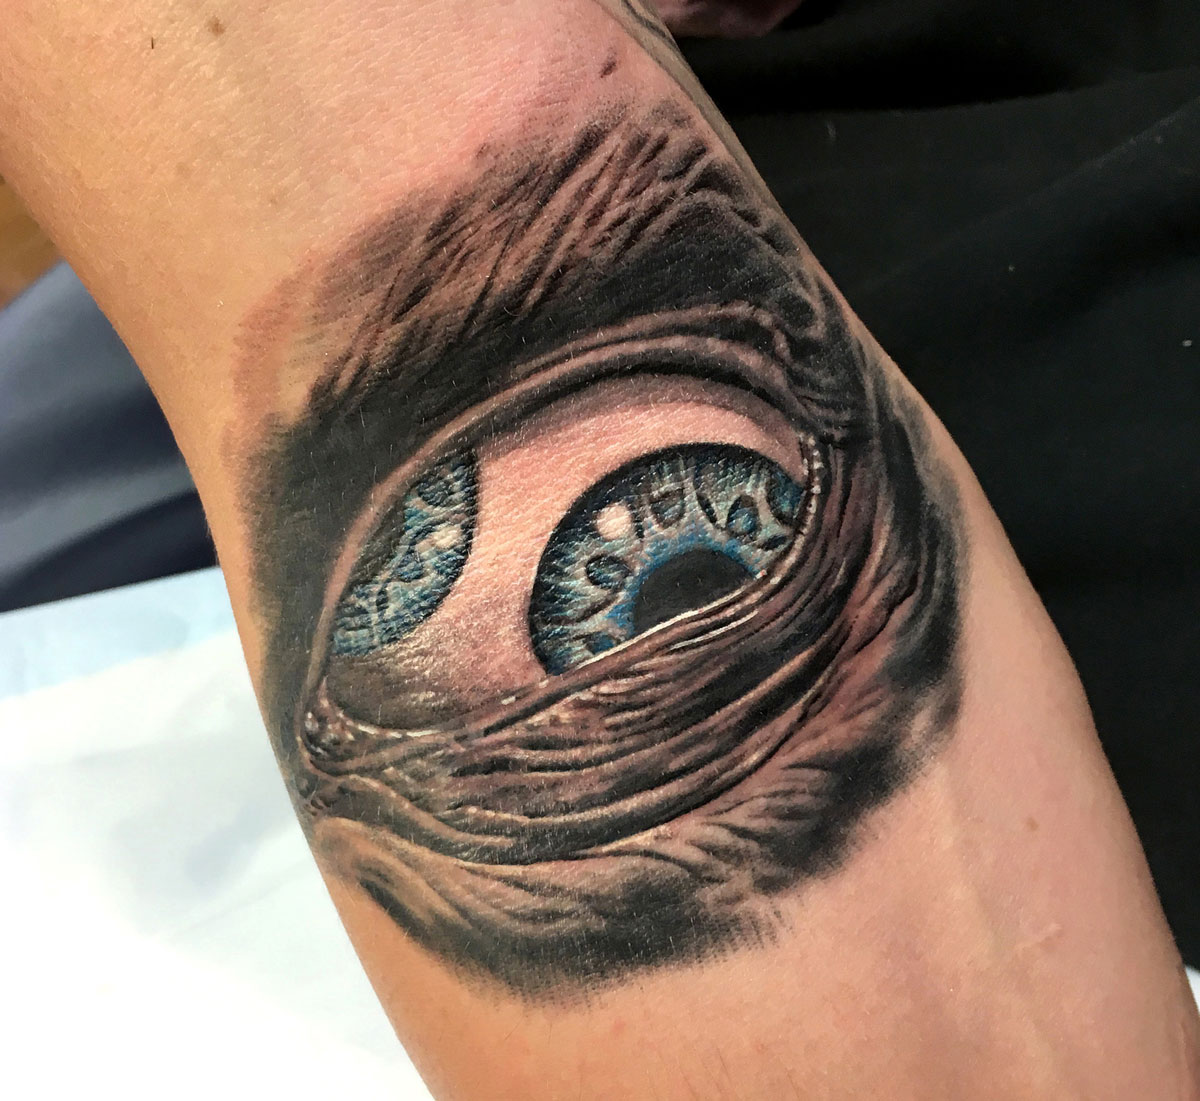 Nathan Puata - realistic eye tattoo